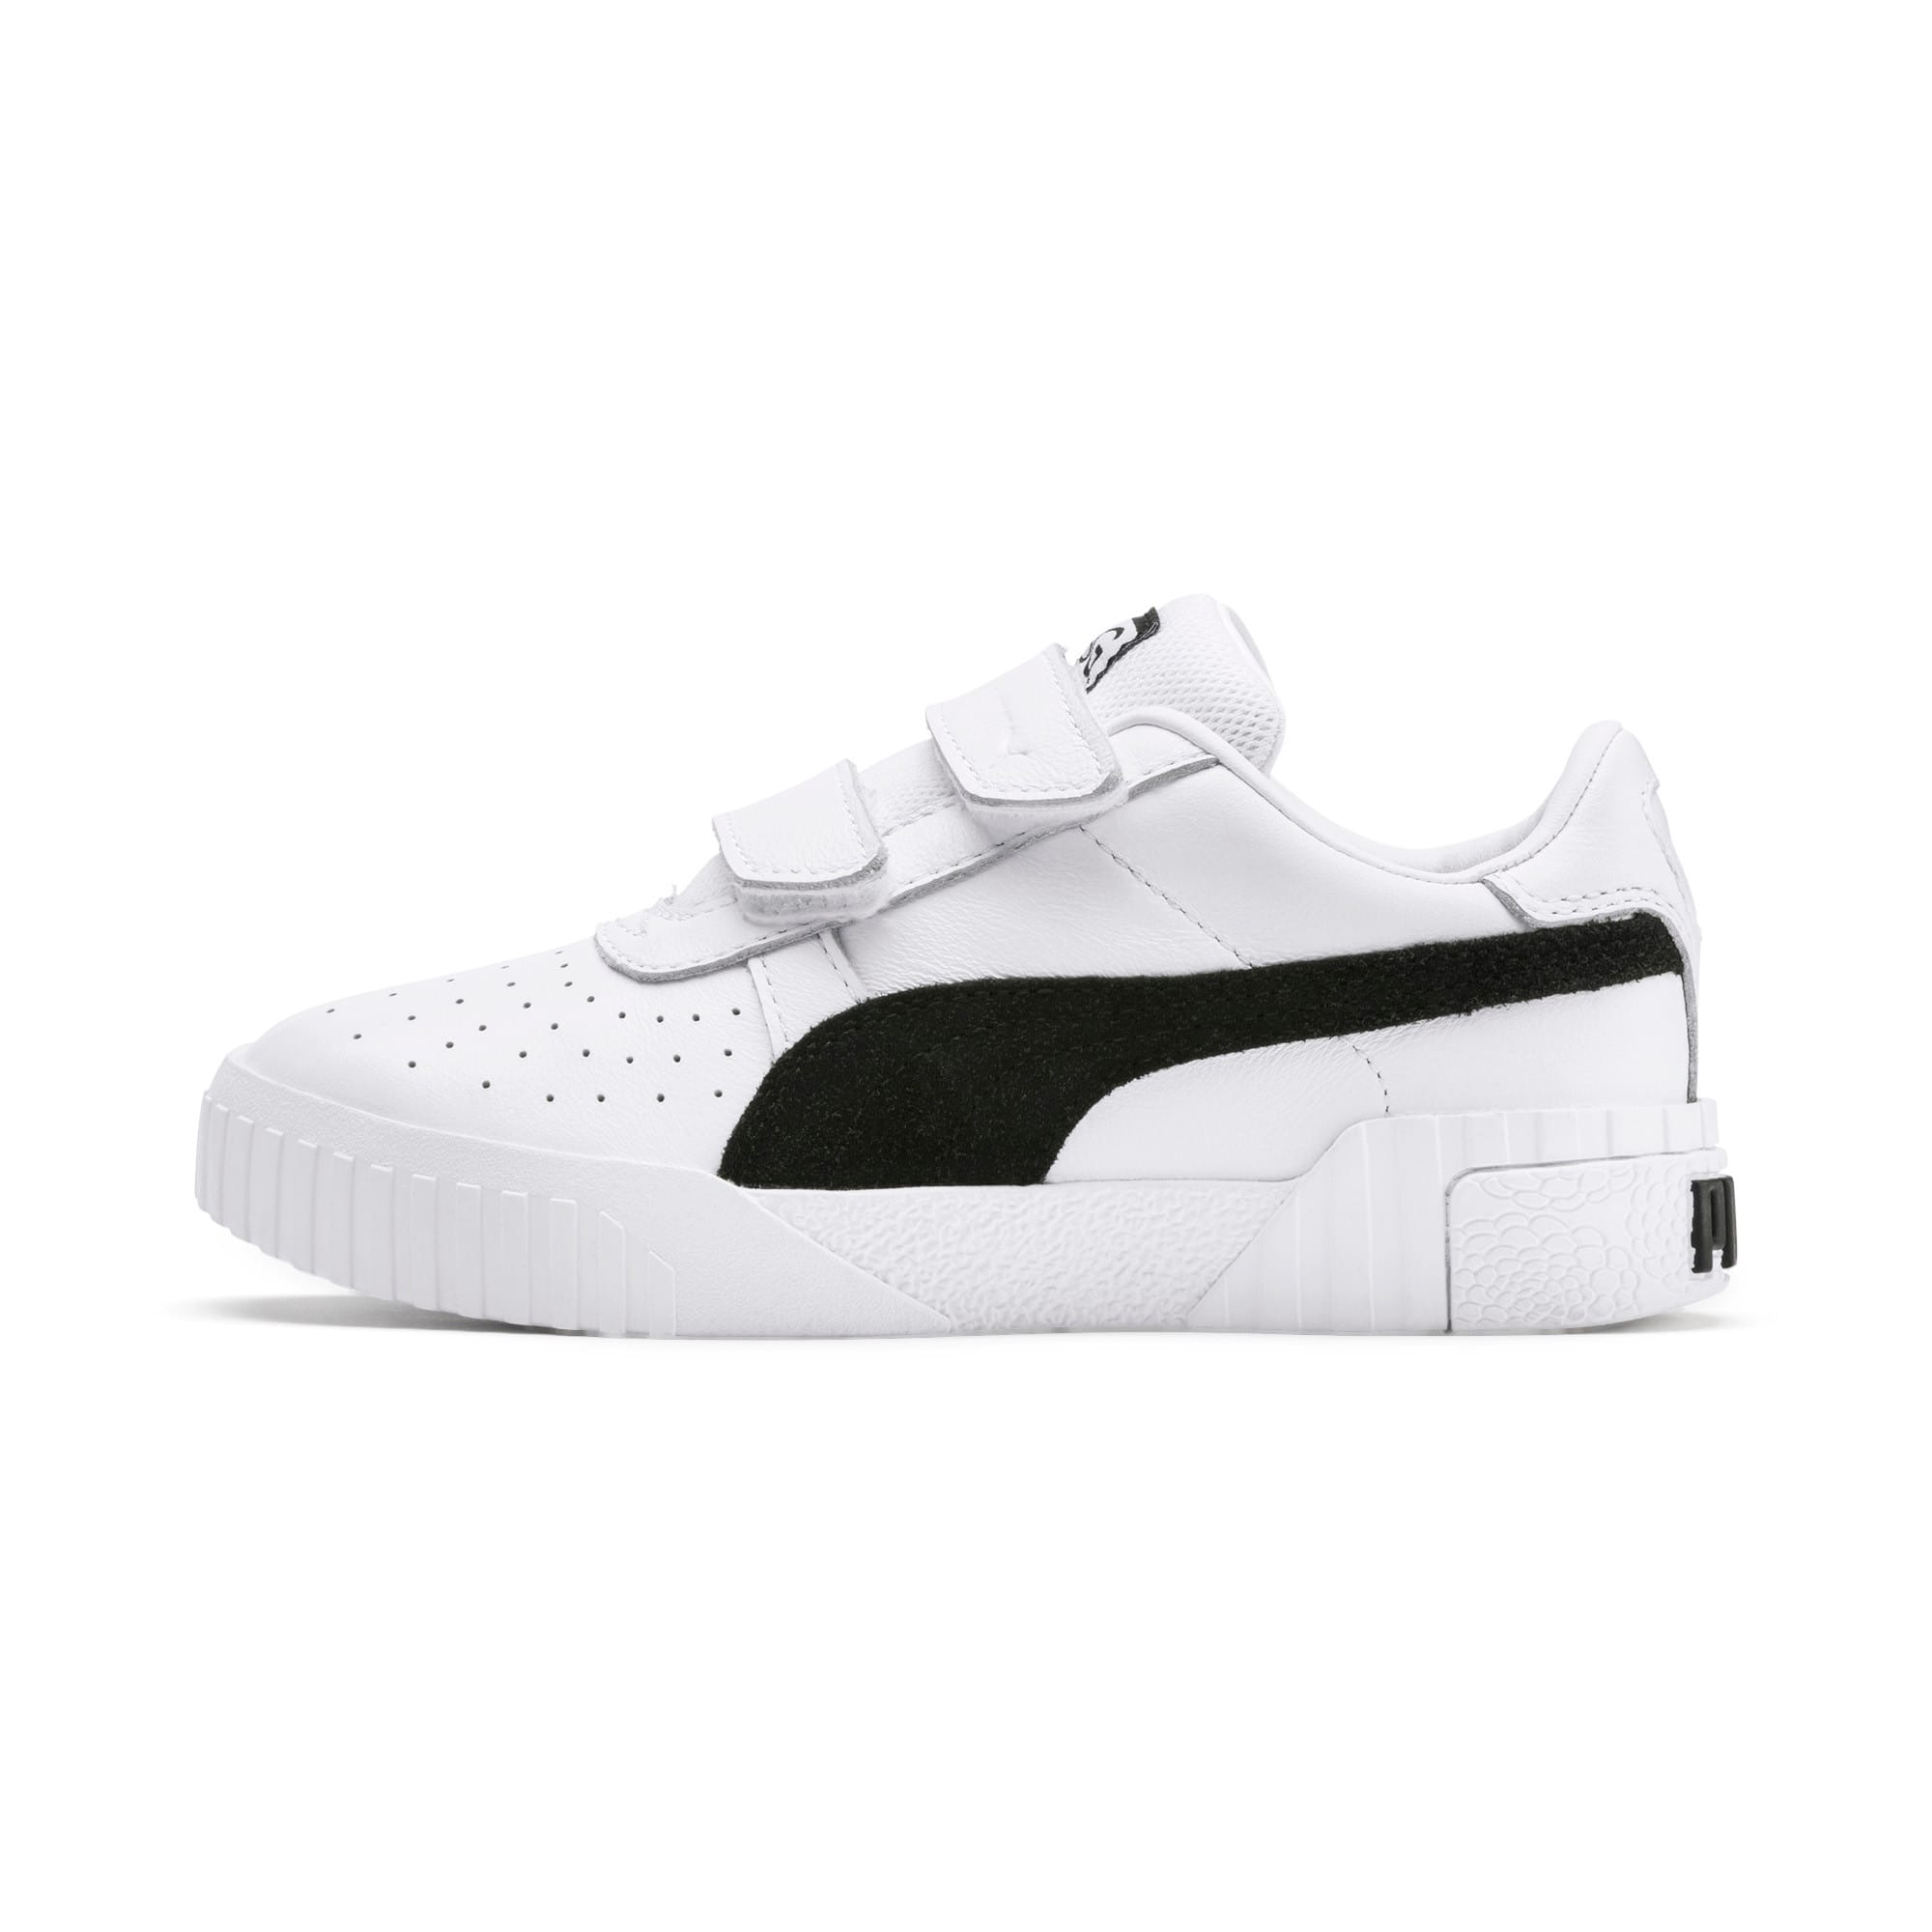 Thumbnail 1 of SG x Cali B+W Little Kids' Shoes, Puma White-Puma Black, medium